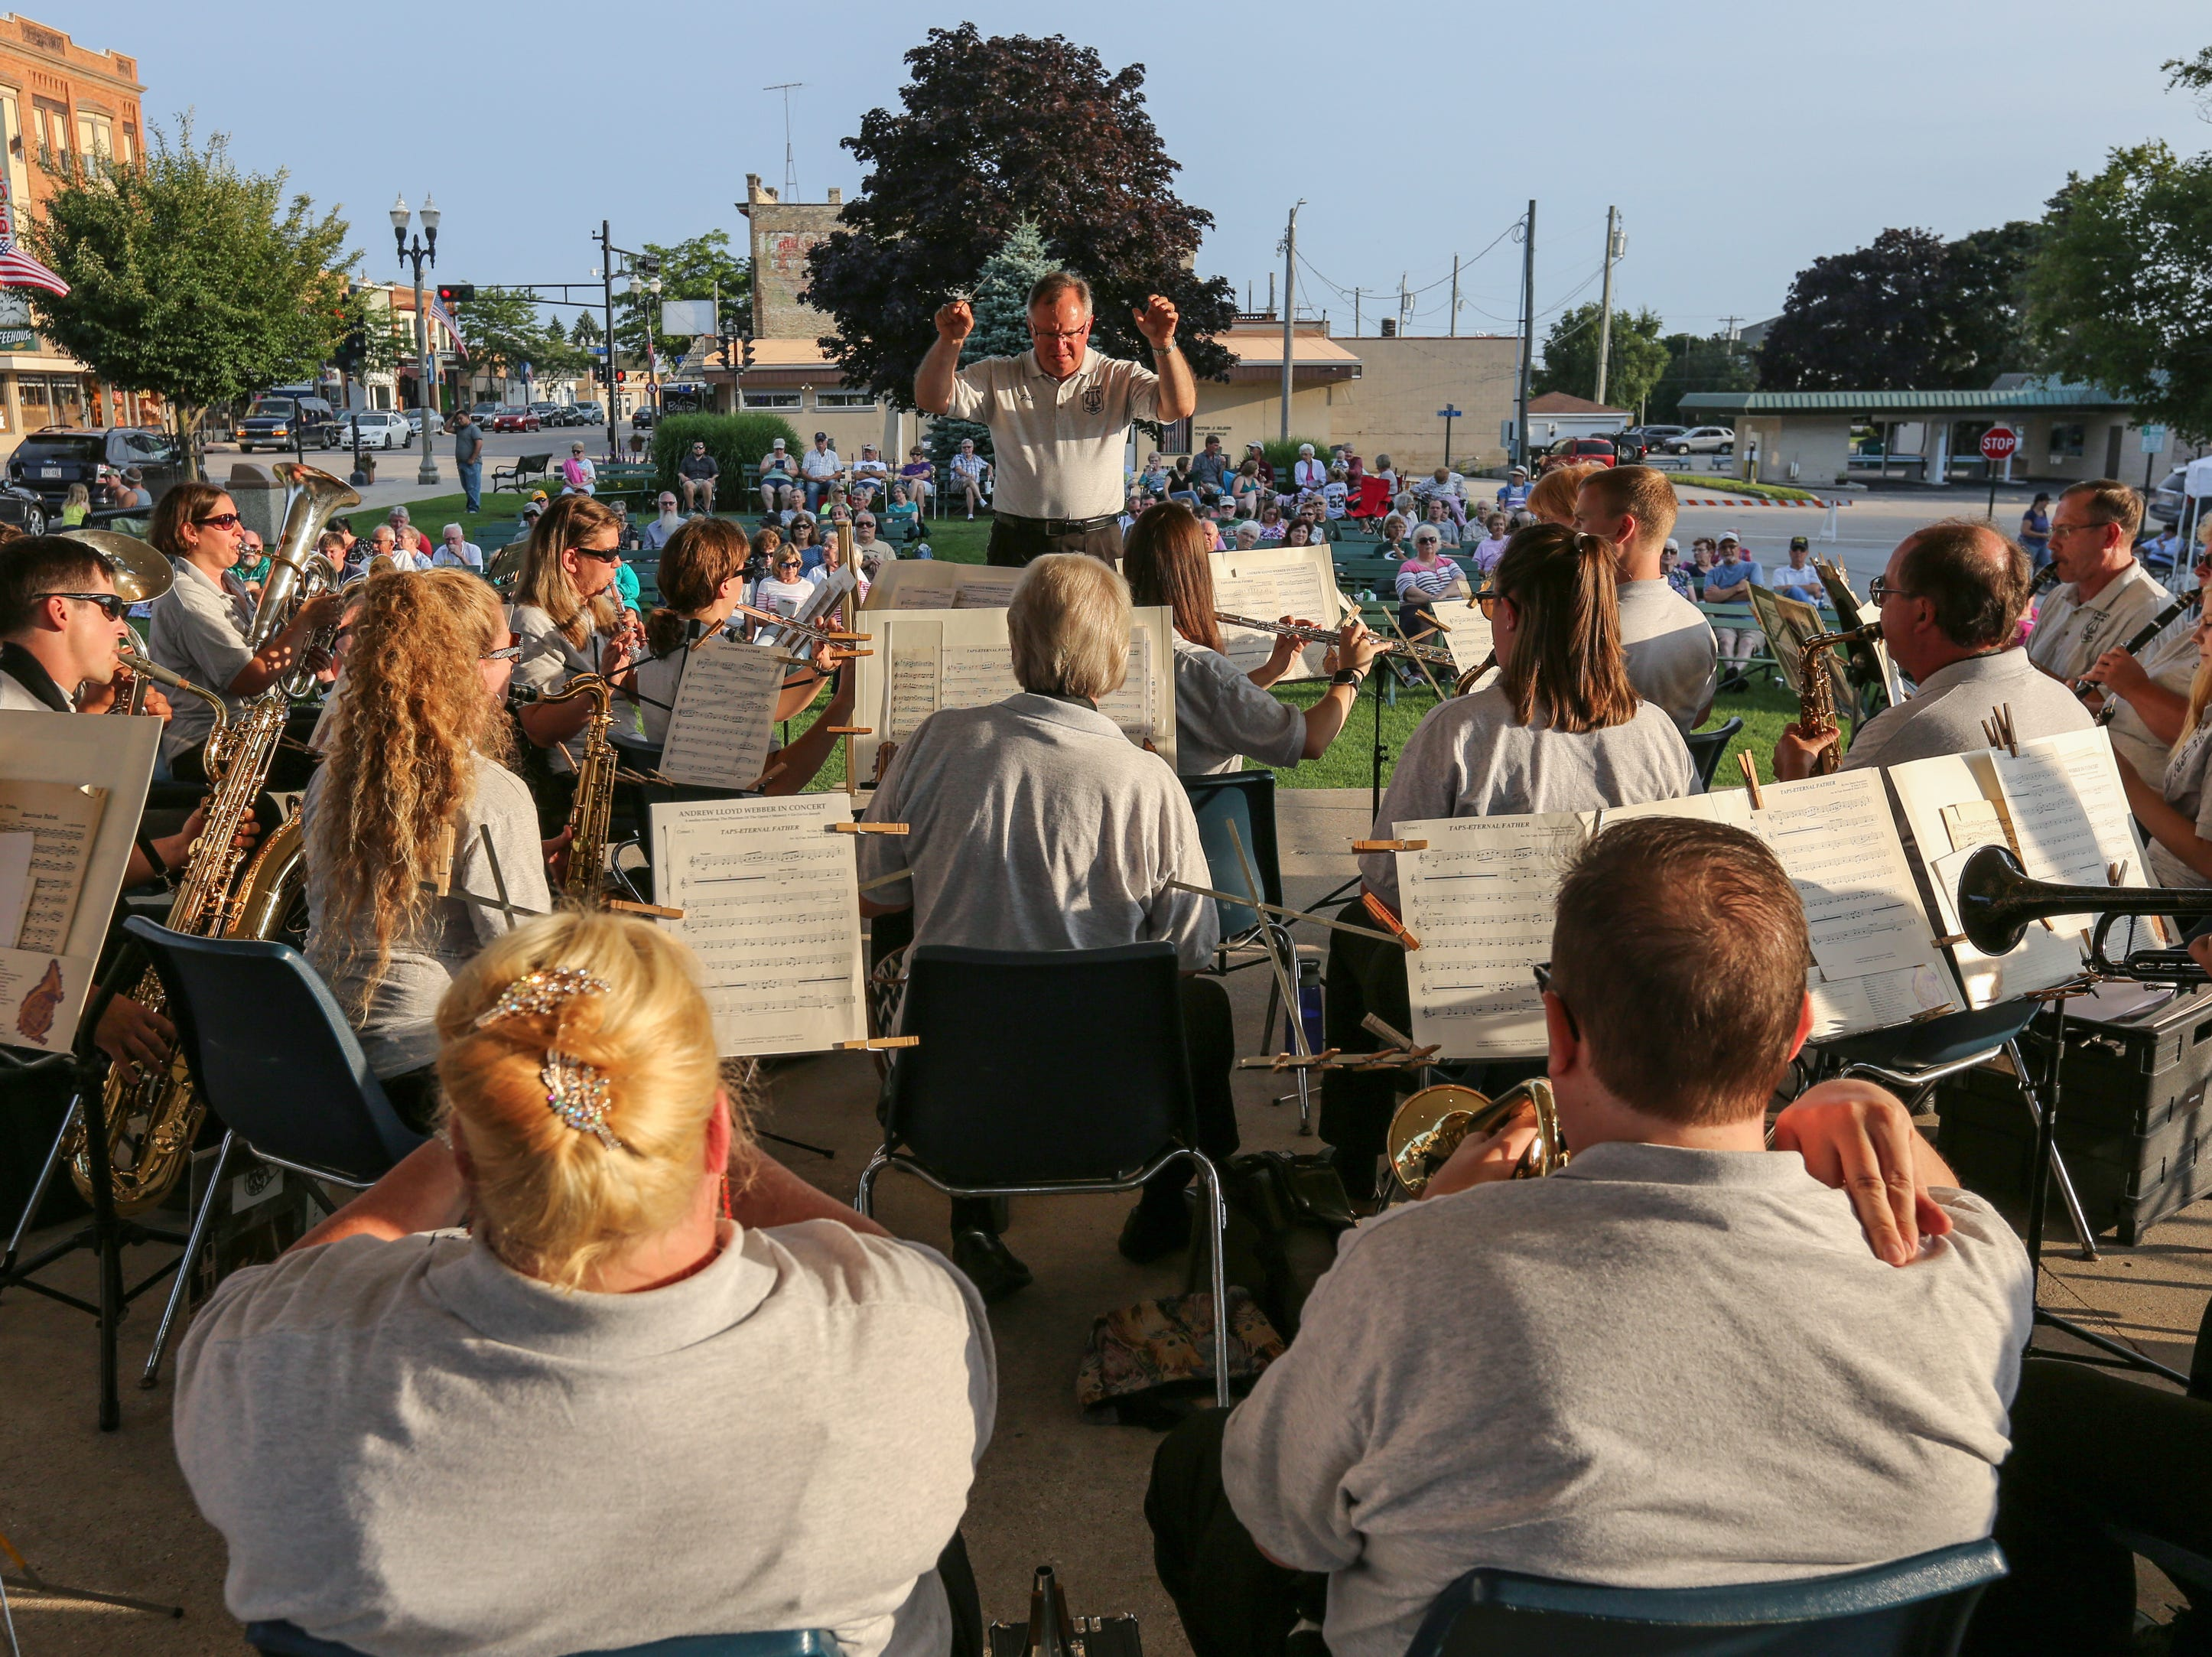 Philip Stangel directs the Two Rivers Community Band in their final concert of the season at Central Park Thursday, August 9, 2018, in Two Rivers, Wis. Josh Clark/USA TODAY NETWORK-Wisconsin